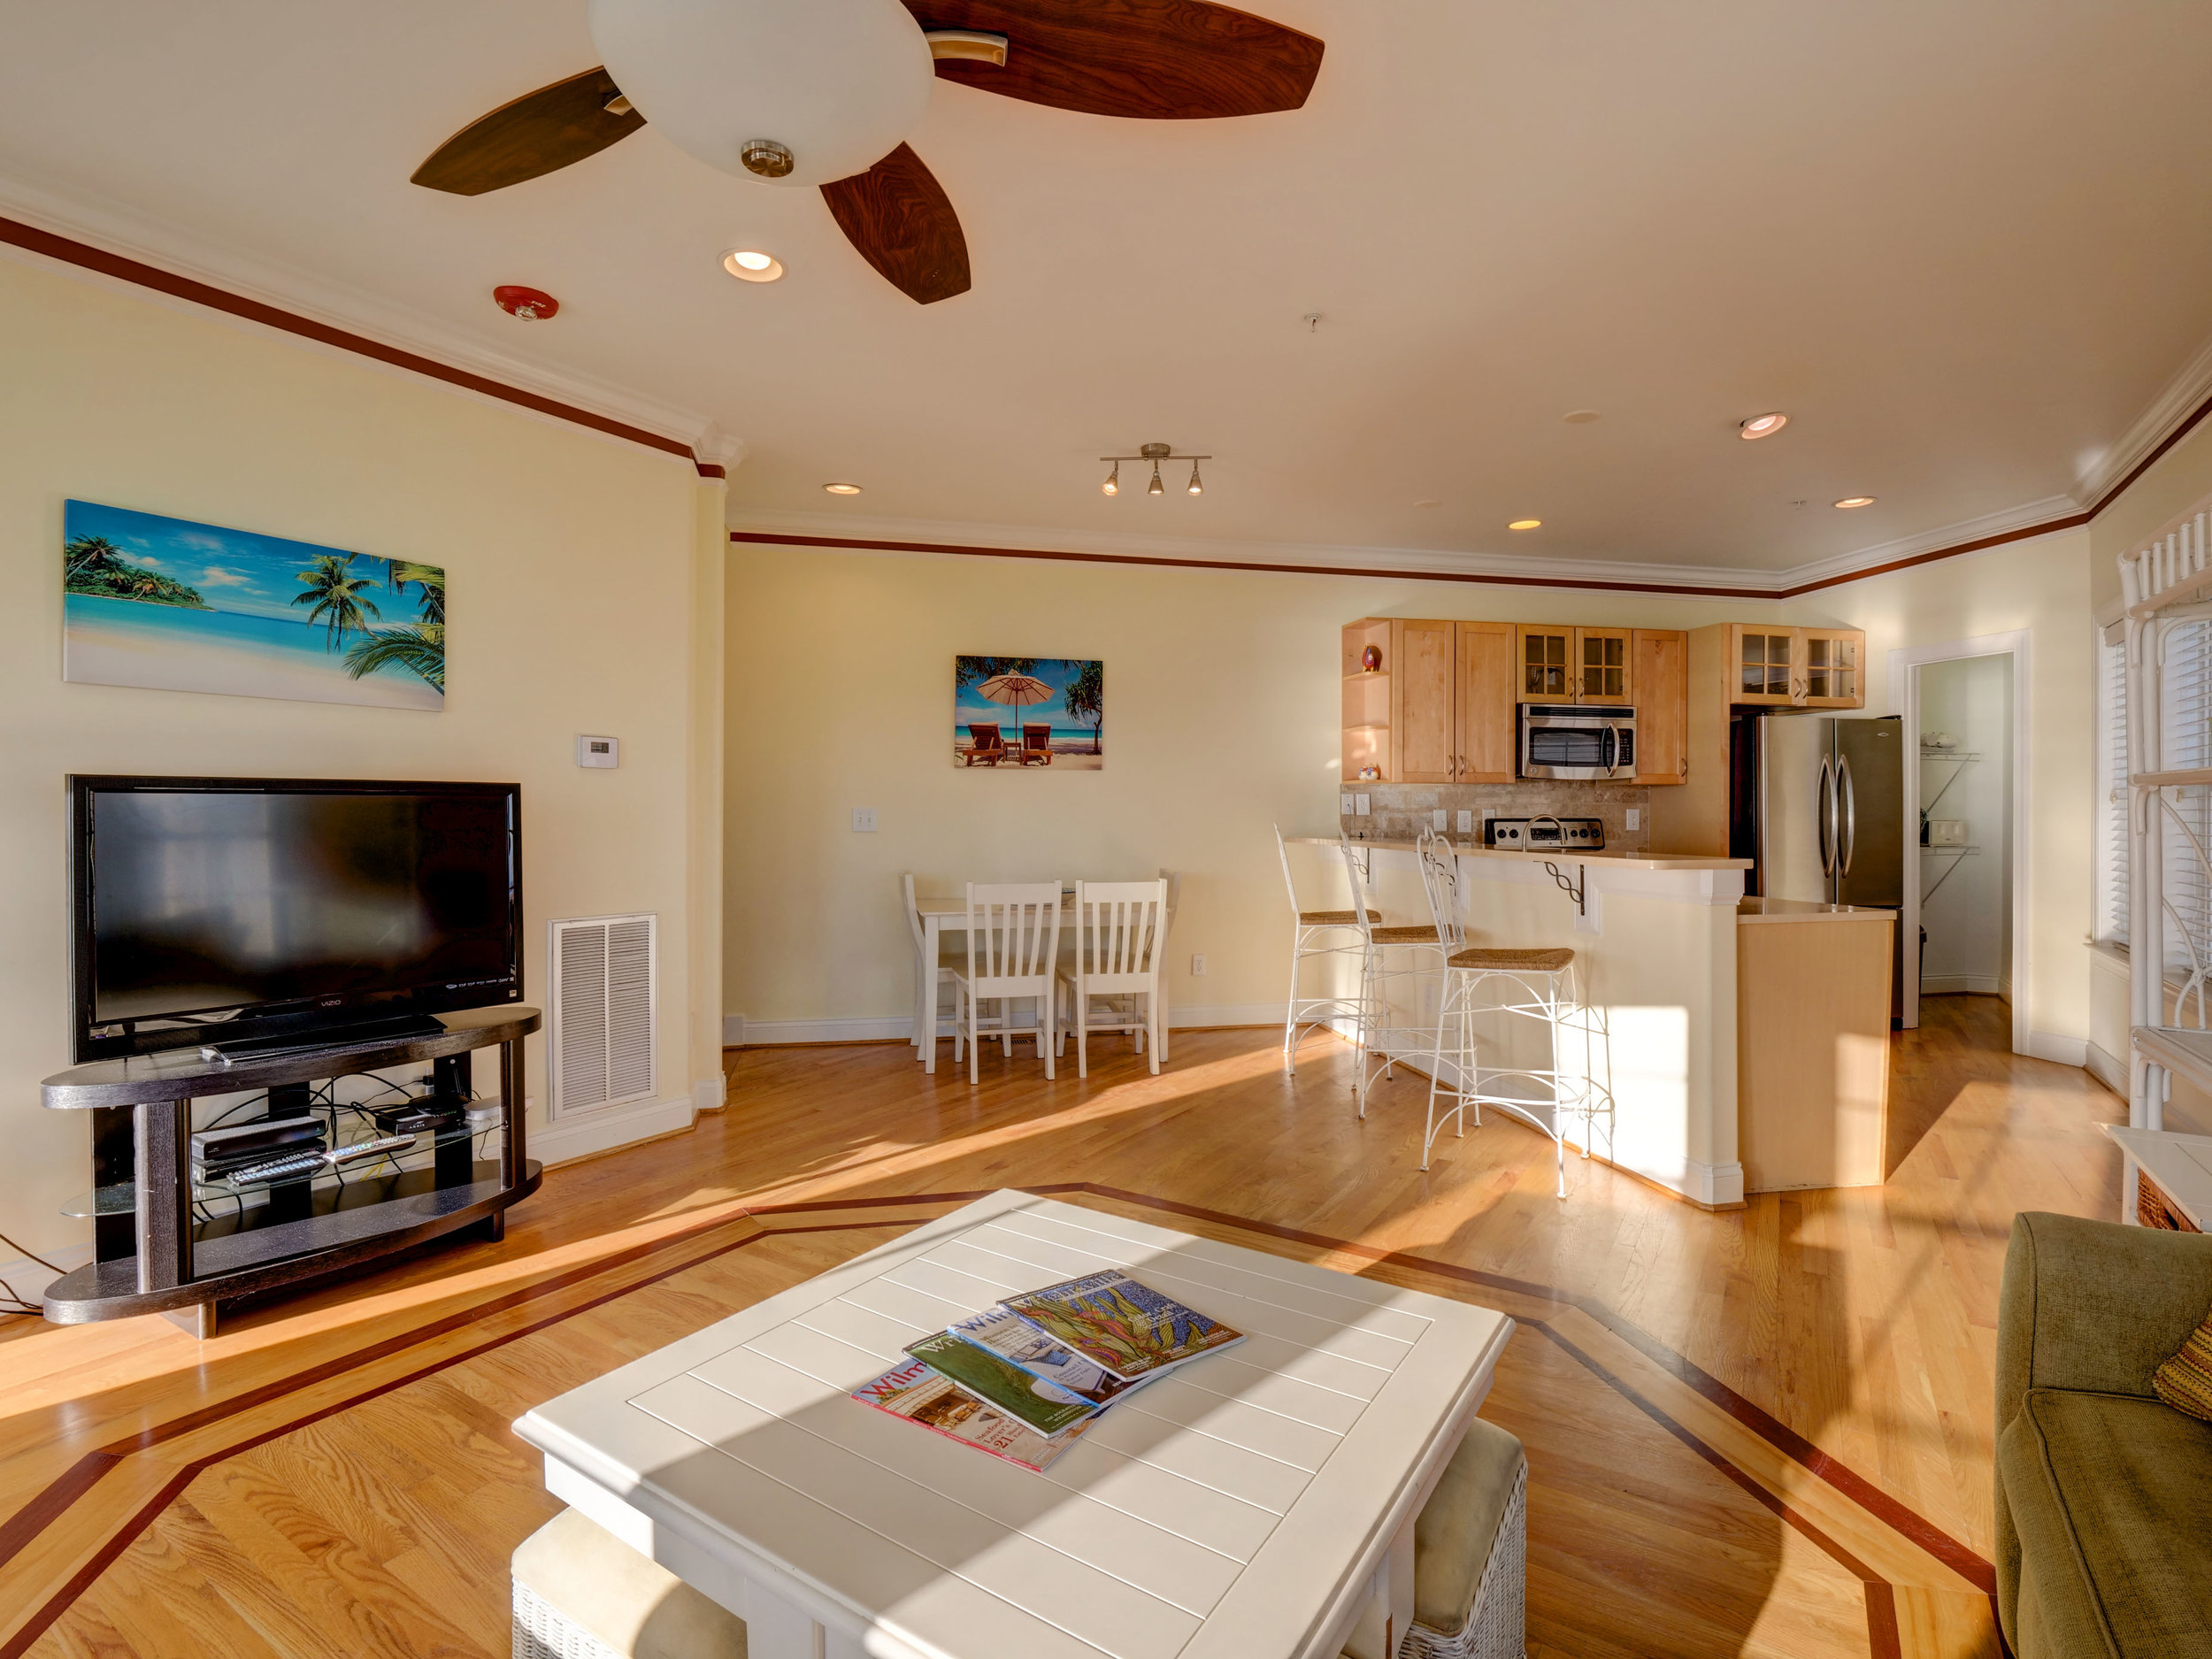 202 N Fort Fisher Blvd Unit 8-print-015-1-Living Room Dining Area-3709x2782-300dpi.jpg